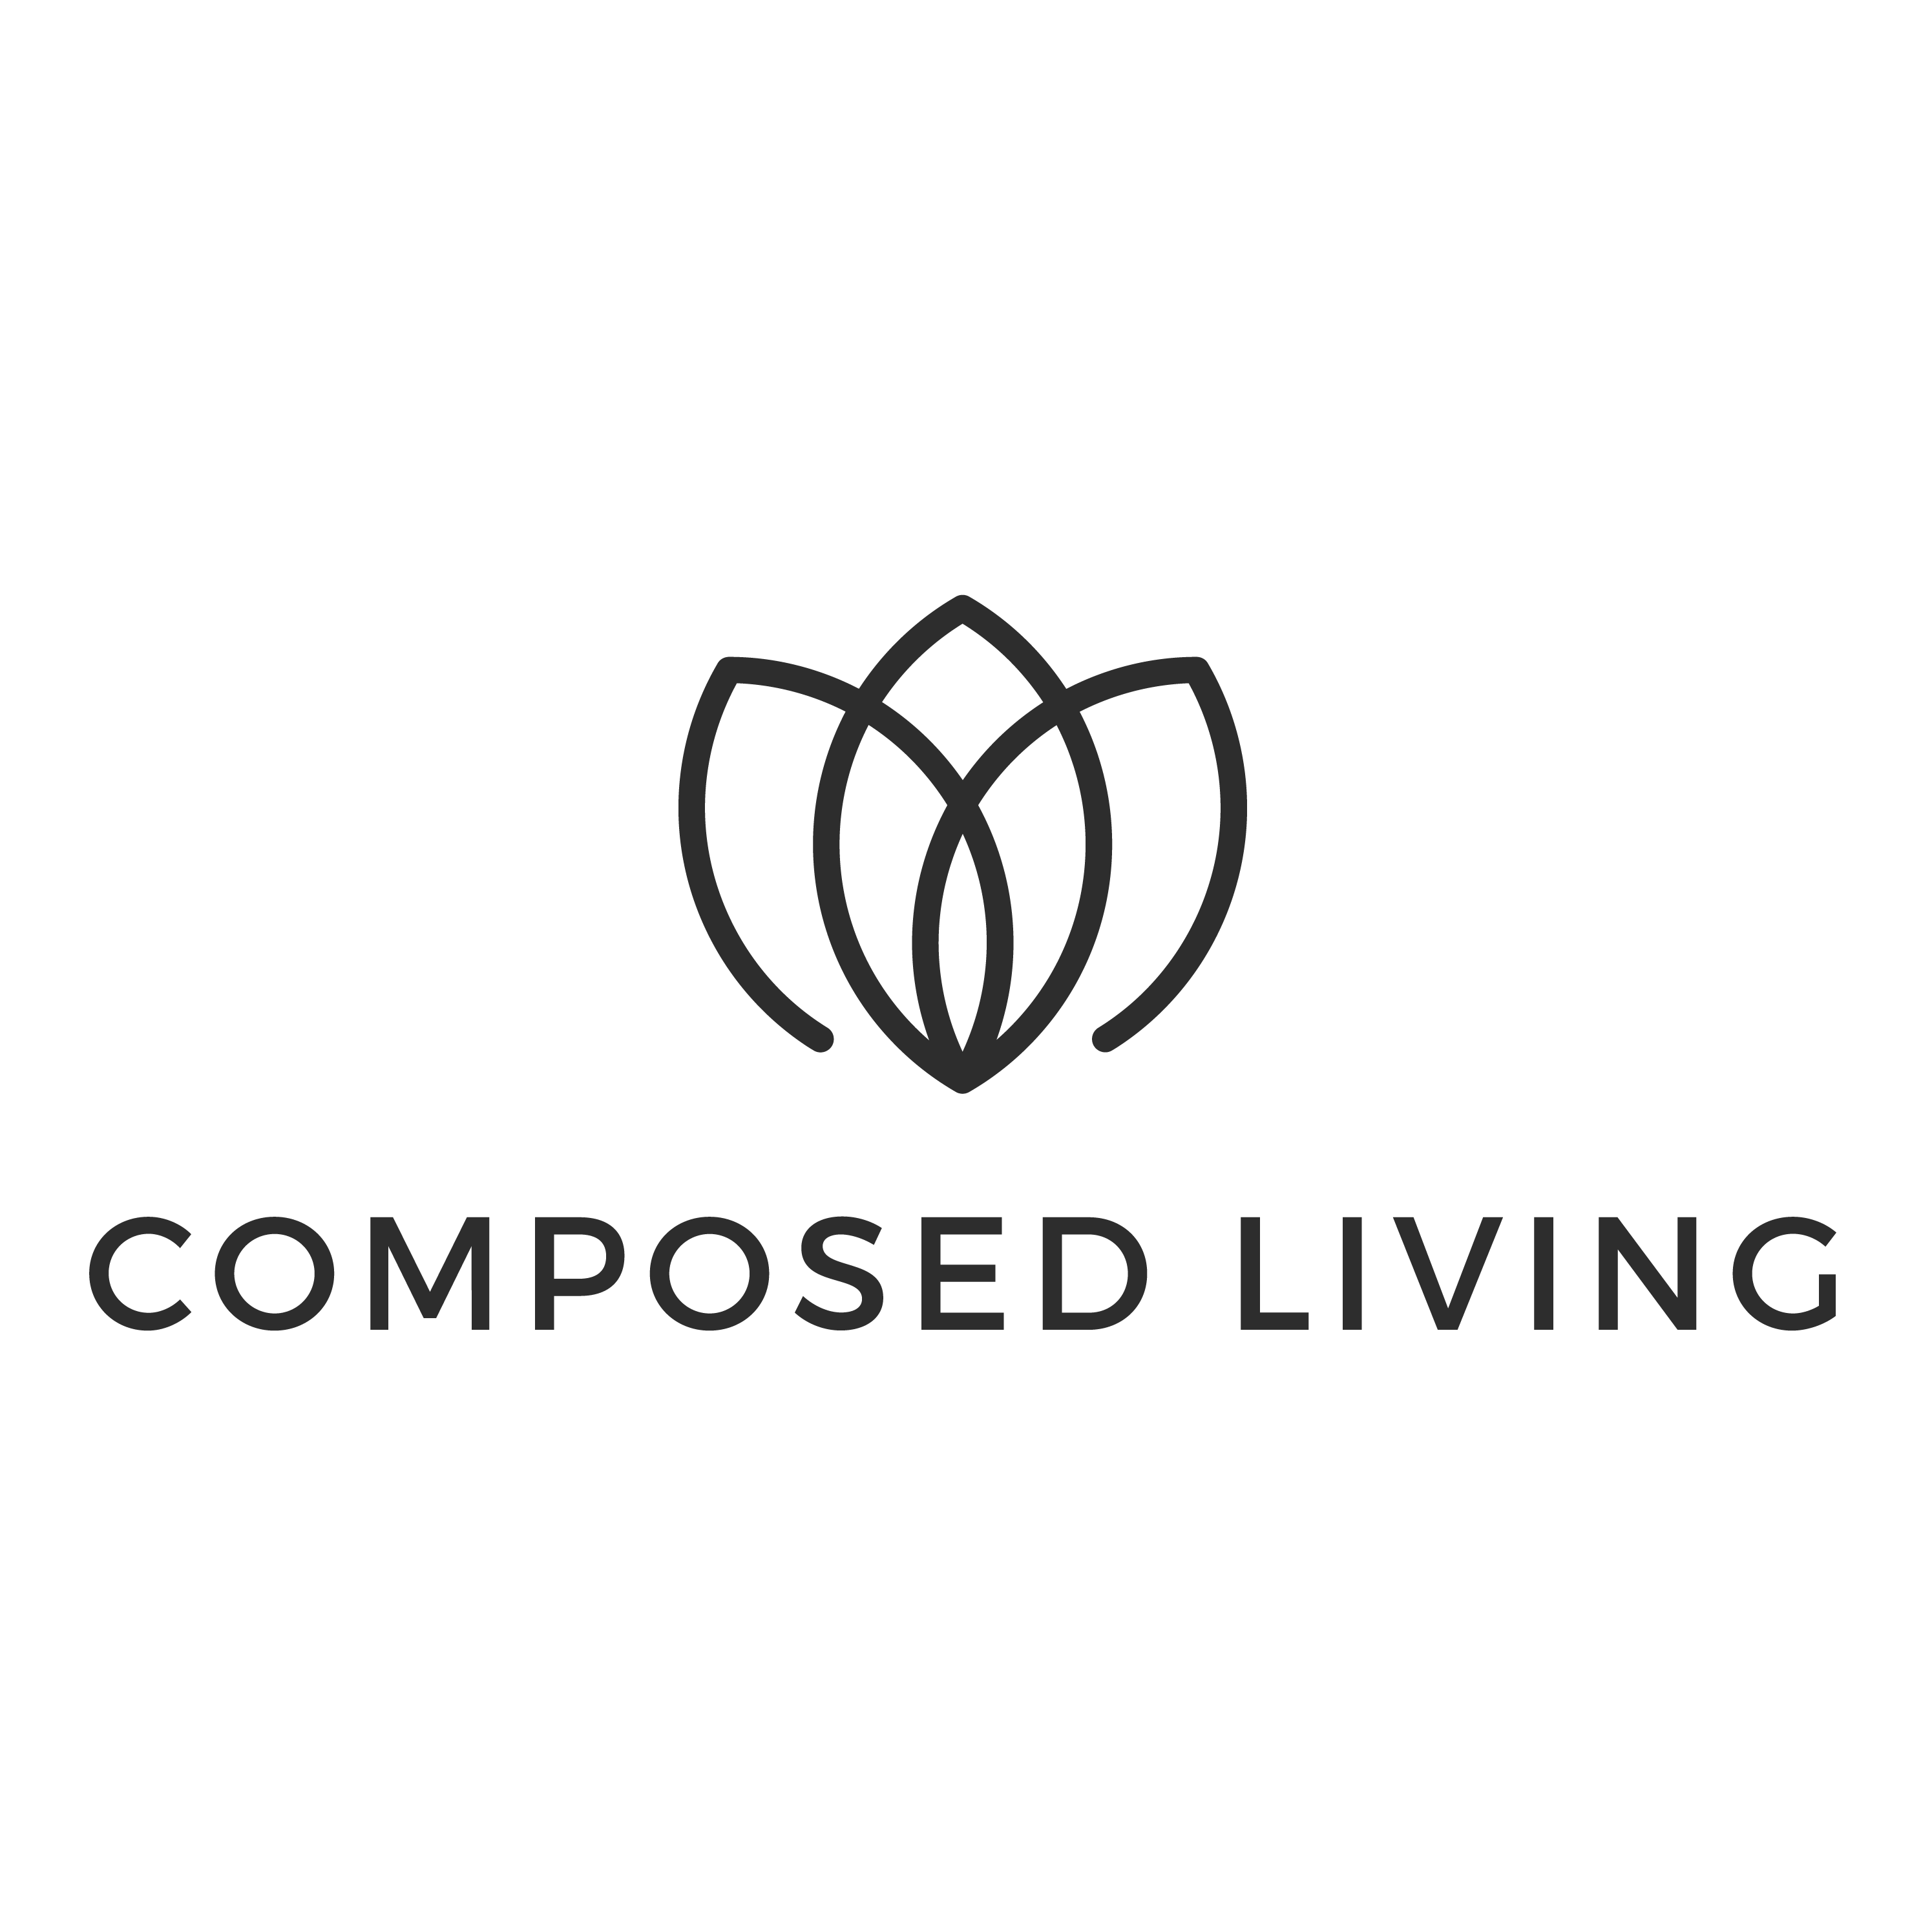 Composed Living